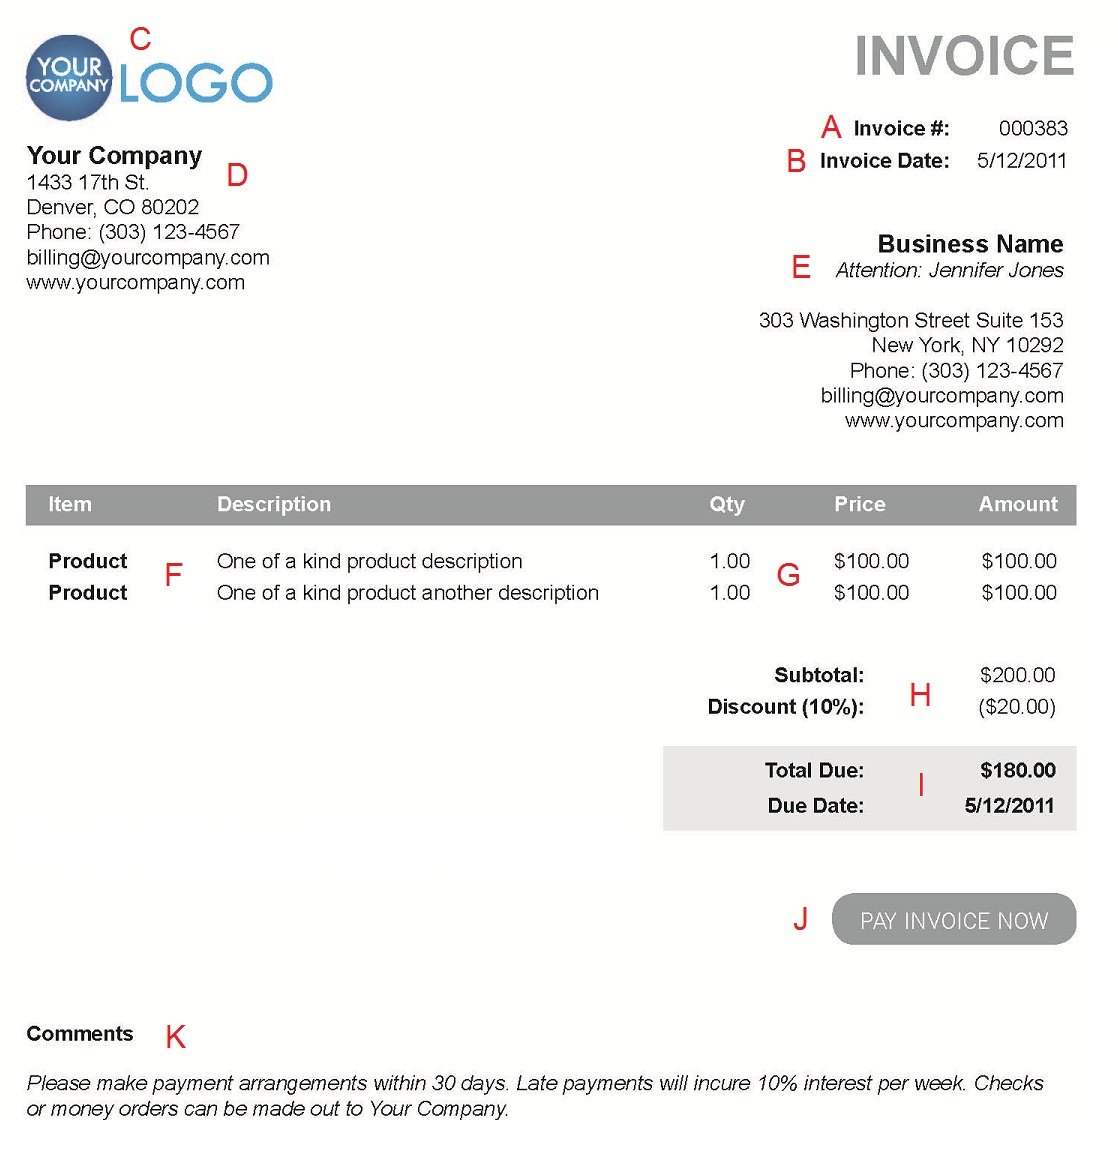 Coolmathgamesus  Remarkable The  Different Sections Of An Electronic Payment Invoice With Entrancing A  With Delectable Invoice Flow Chart Also Ford Fusion Invoice In Addition Meaning Invoice And Export Invoice Sample As Well As Tally Invoice Additionally Google Documents Invoice Template From Paysimplecom With Coolmathgamesus  Entrancing The  Different Sections Of An Electronic Payment Invoice With Delectable A  And Remarkable Invoice Flow Chart Also Ford Fusion Invoice In Addition Meaning Invoice From Paysimplecom